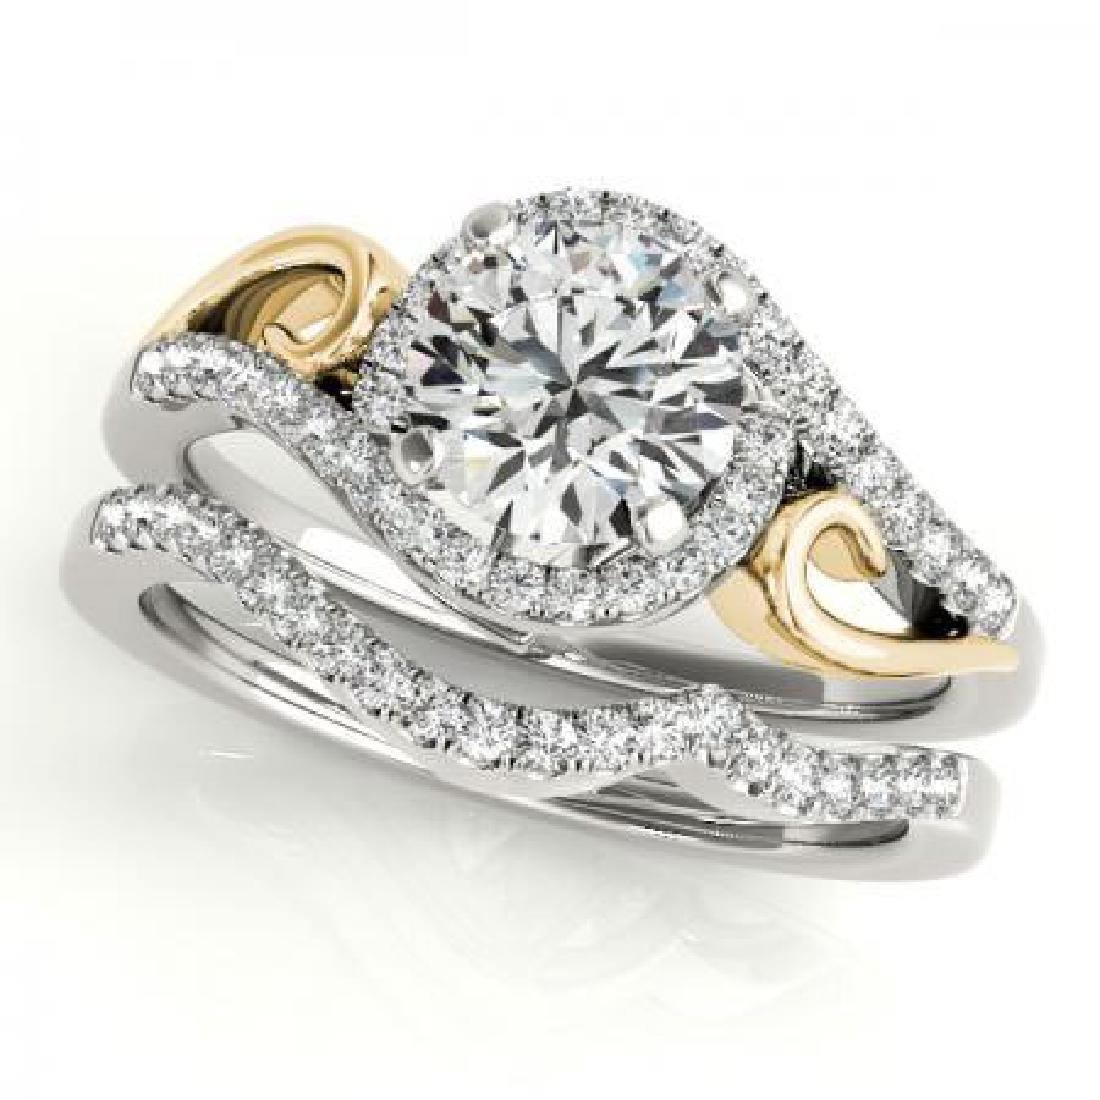 CERTIFIED 18KT TWO TONE GOLD 1.39 CT G-H/VS-SI1 DIAMOND